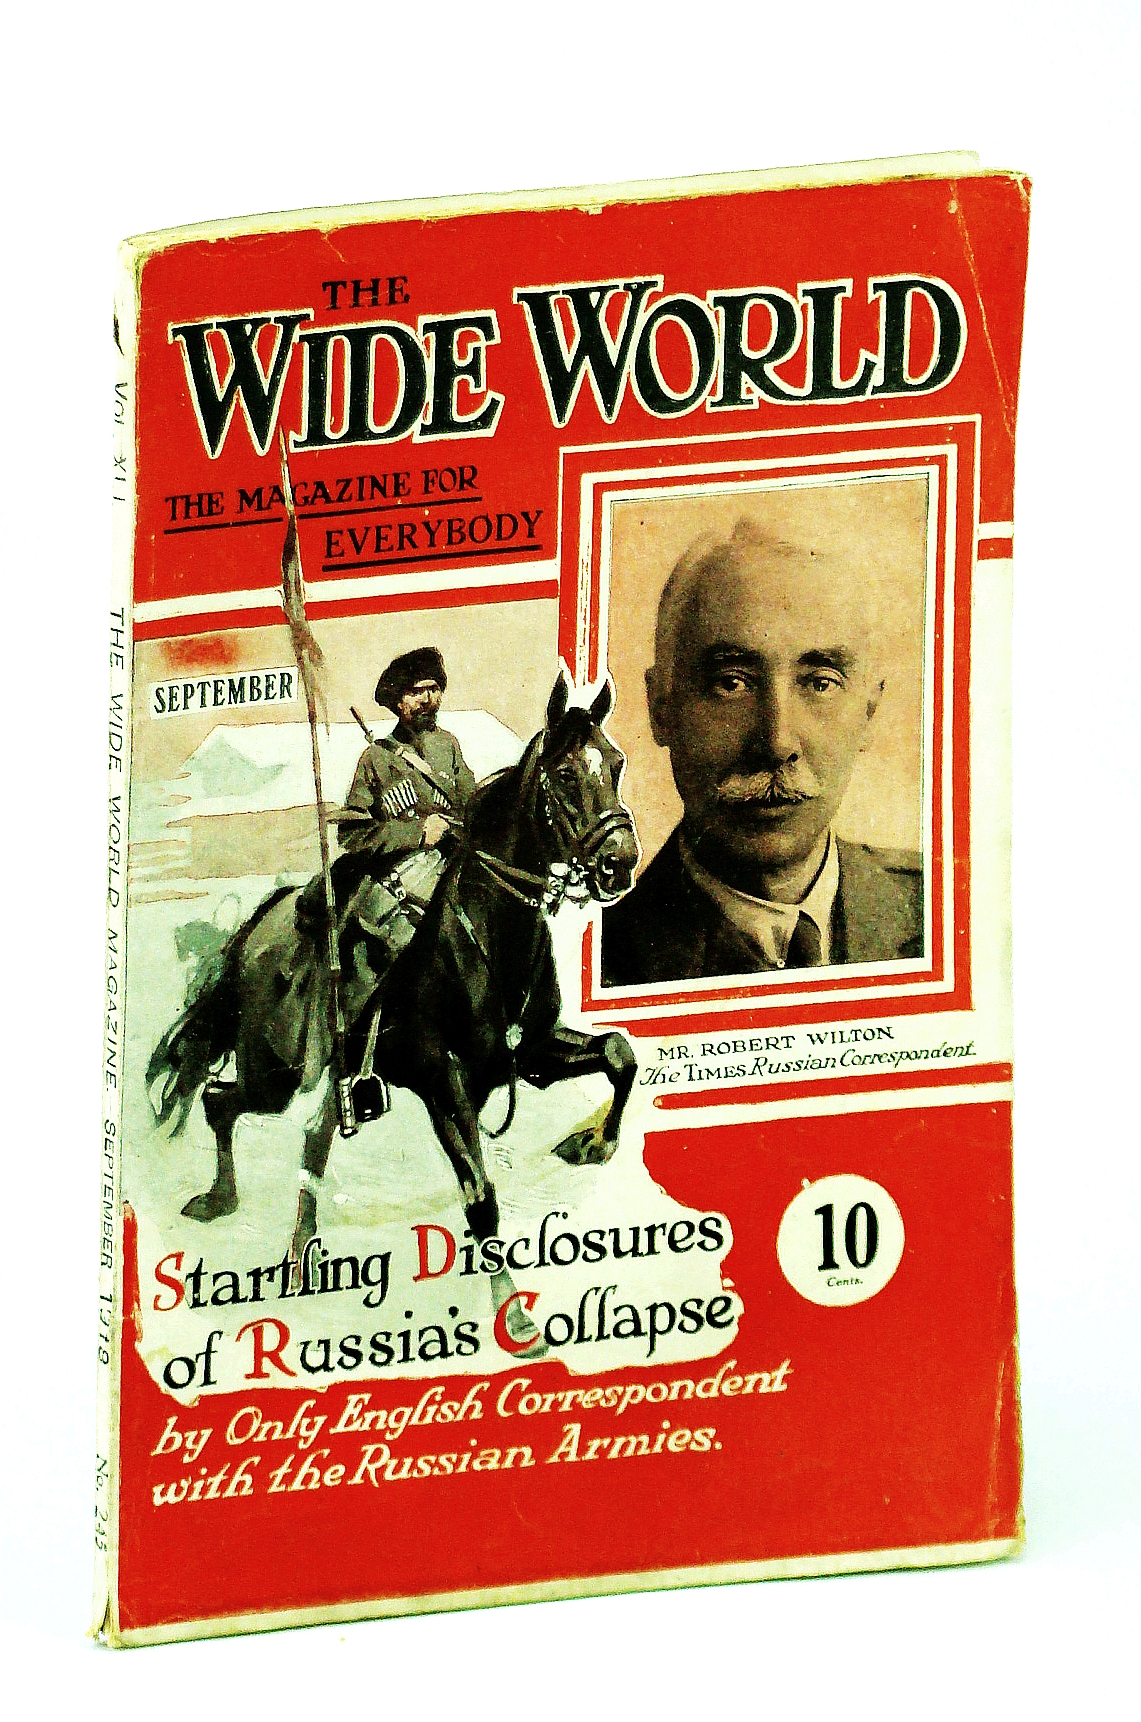 Image for The Wide World Magazine, September (Sept.) 1918 - Cover Photo of Robert Wilton Who Provides Startling Disclosures of Russia's Collapse